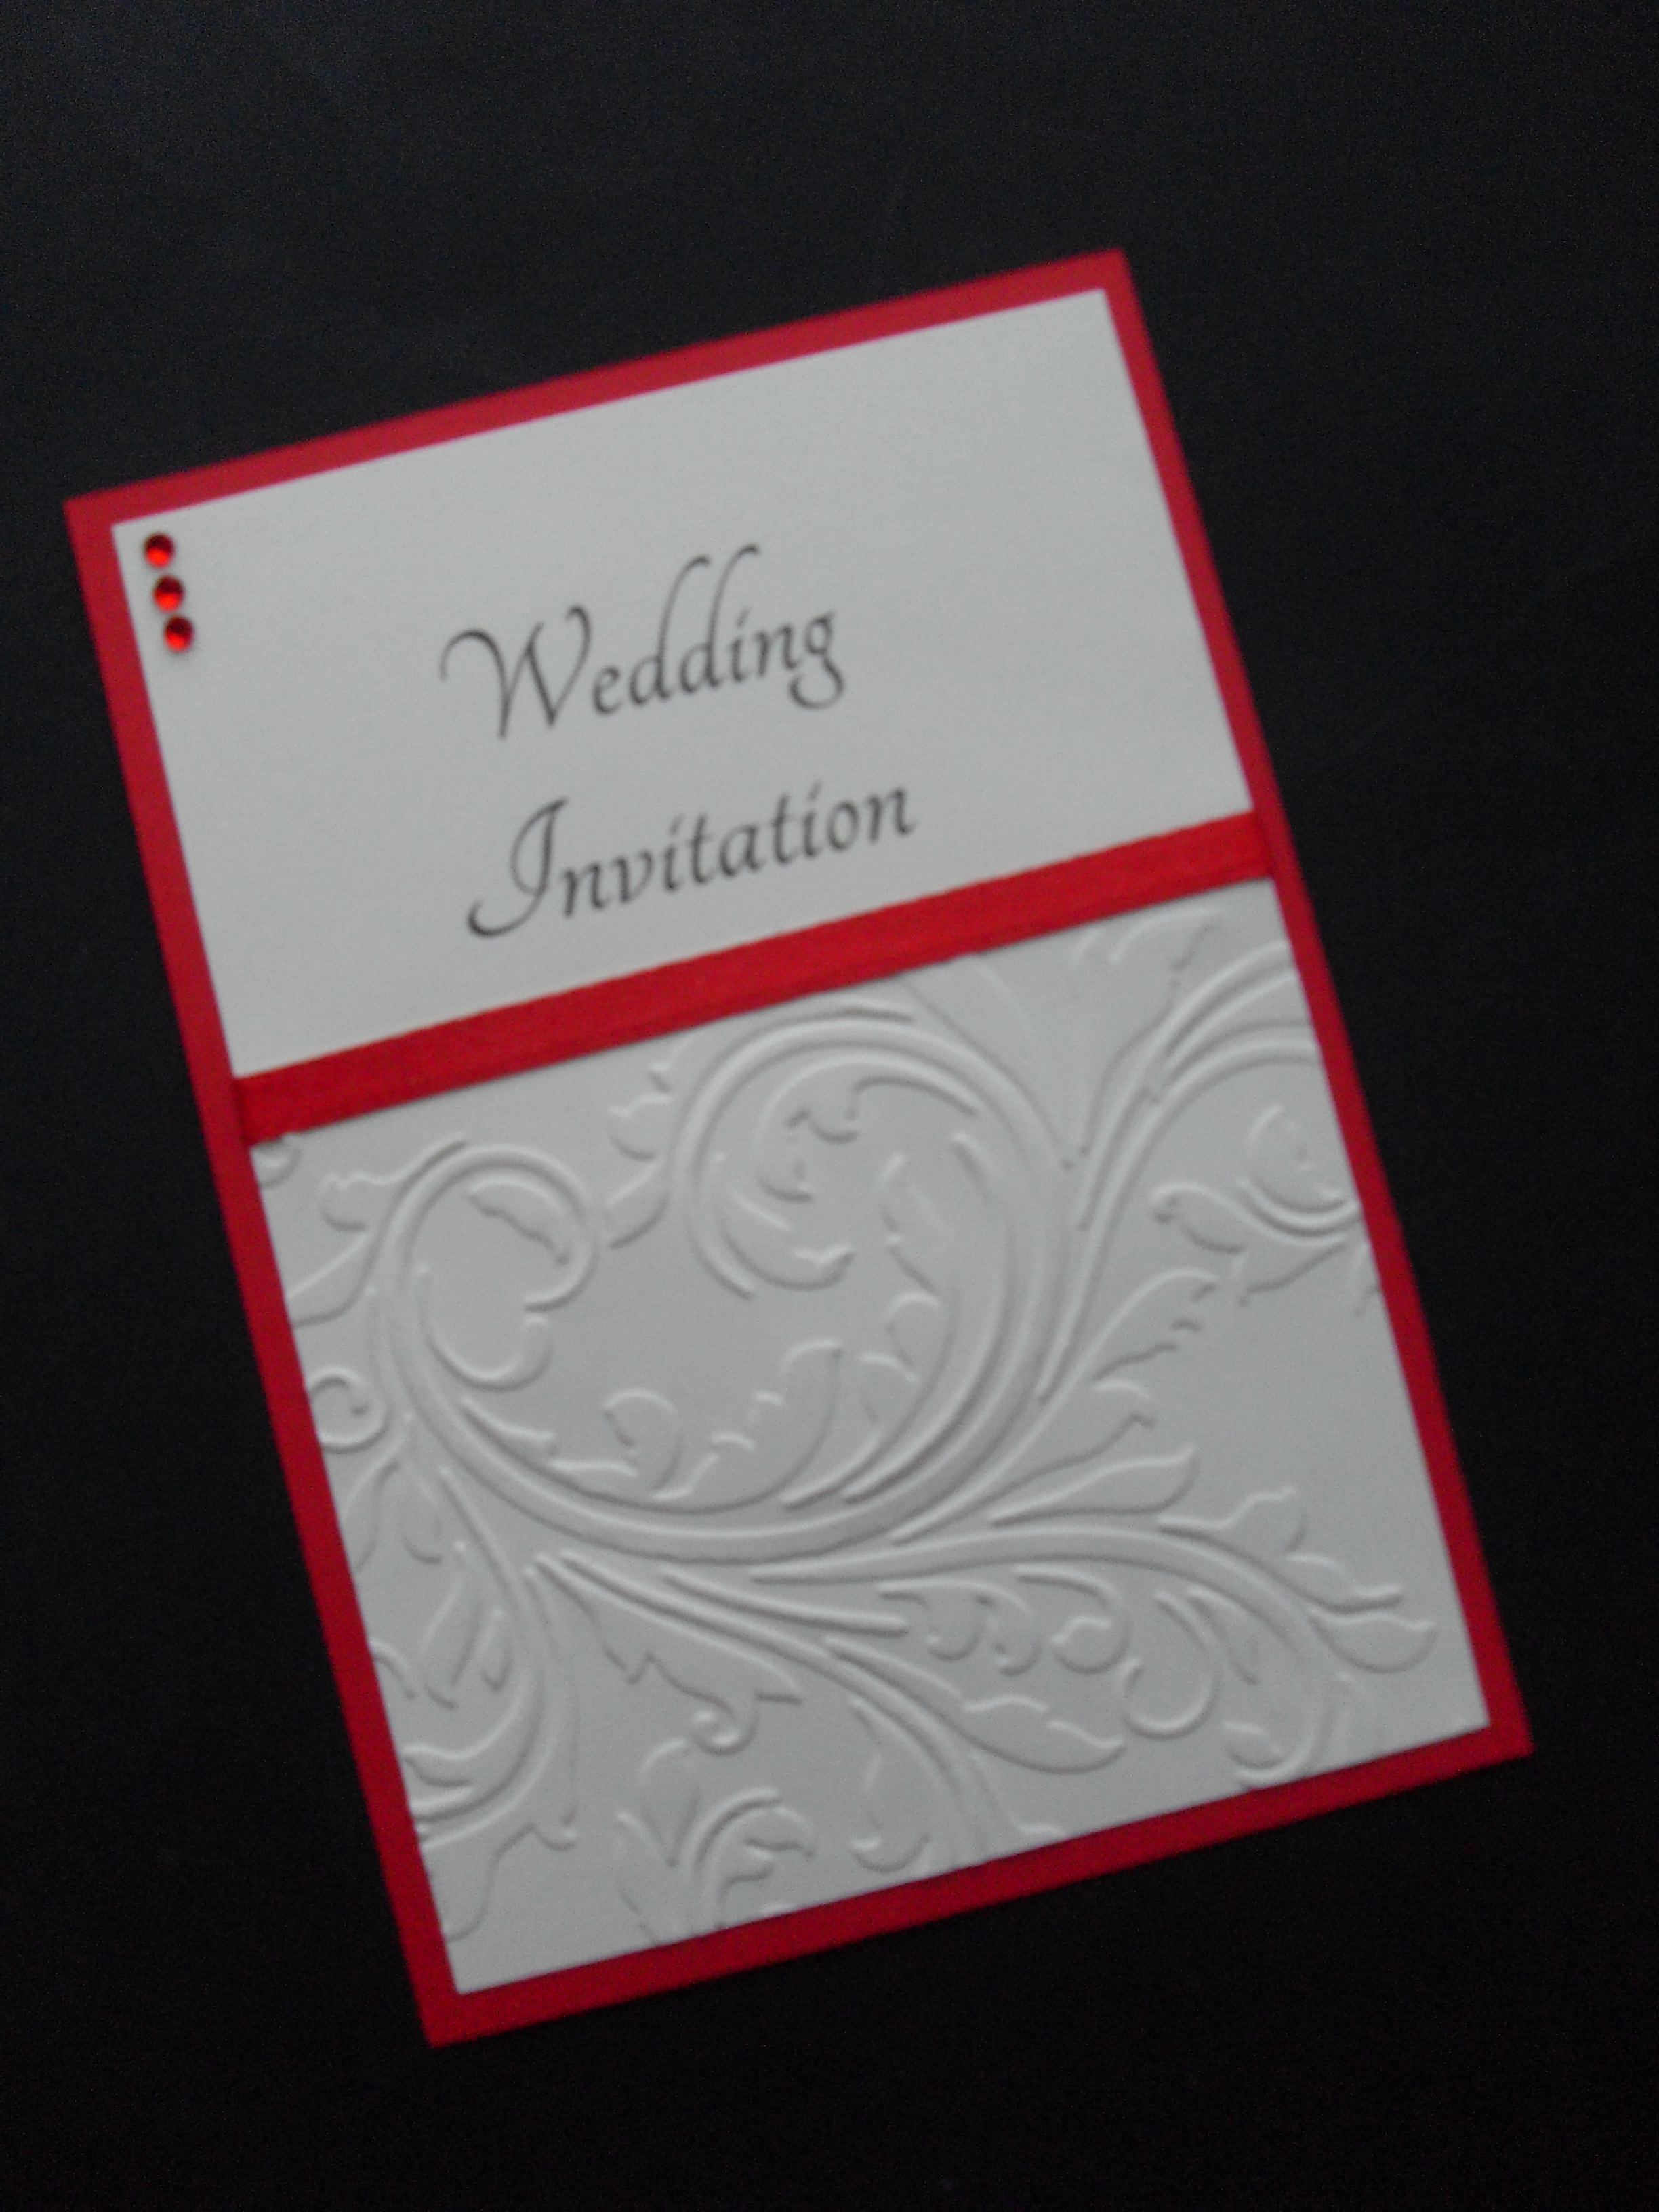 regal - wedding invitation.jpg: 7060 bytes